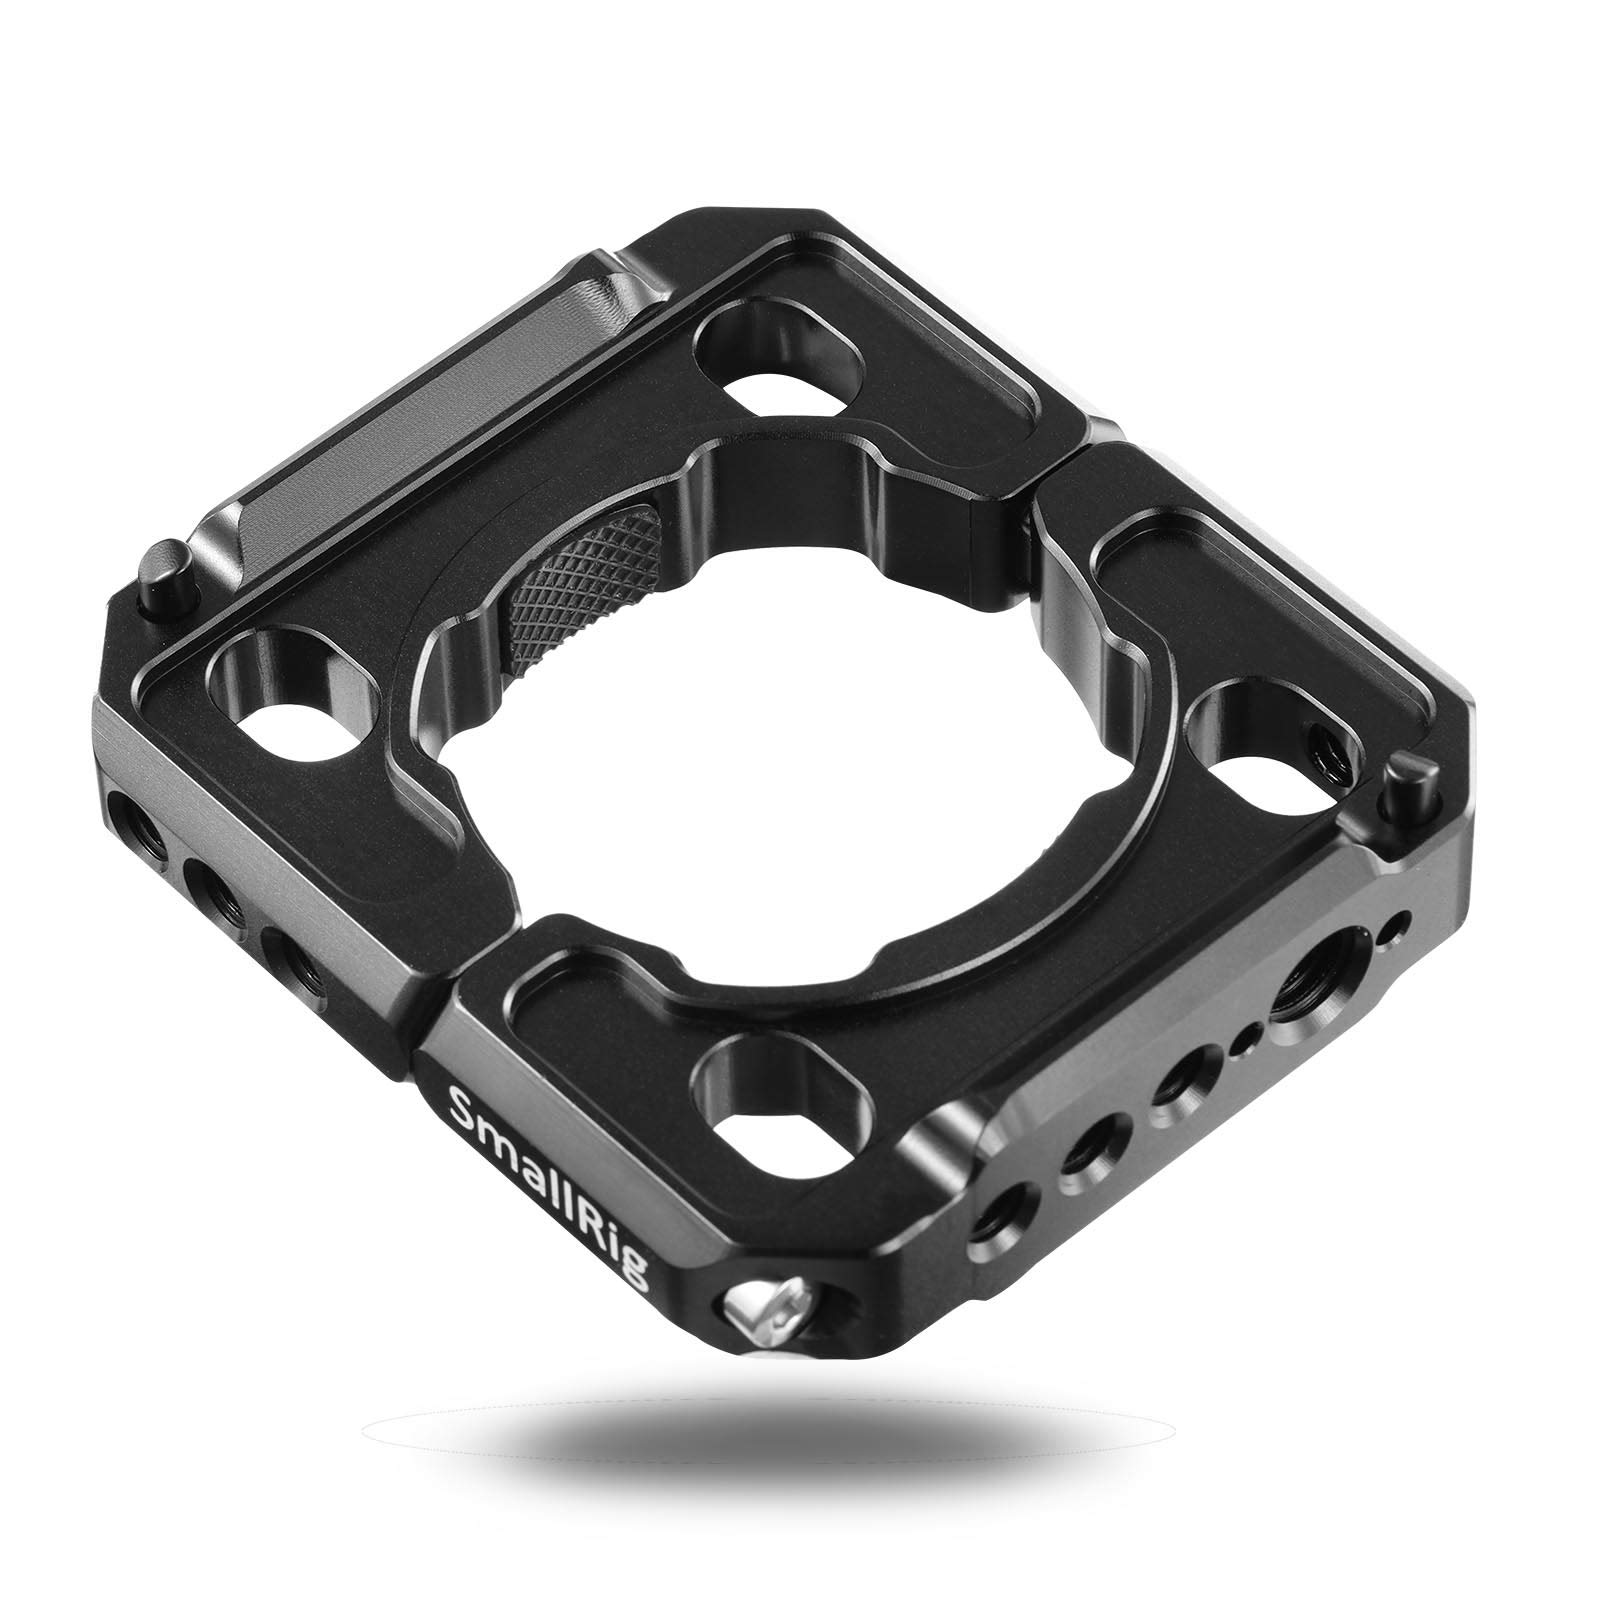 SMALLRIG Rod Clamp Ring Extension Mounting Ring Compatible with DJI Ronin S Gimbal Stabilizer for DSLR Camera w/NATO Rail, 1/4'' Threaded Holes and 3/8'' Locating Holes for ARRI Standard - 2221 by SMALLRIG